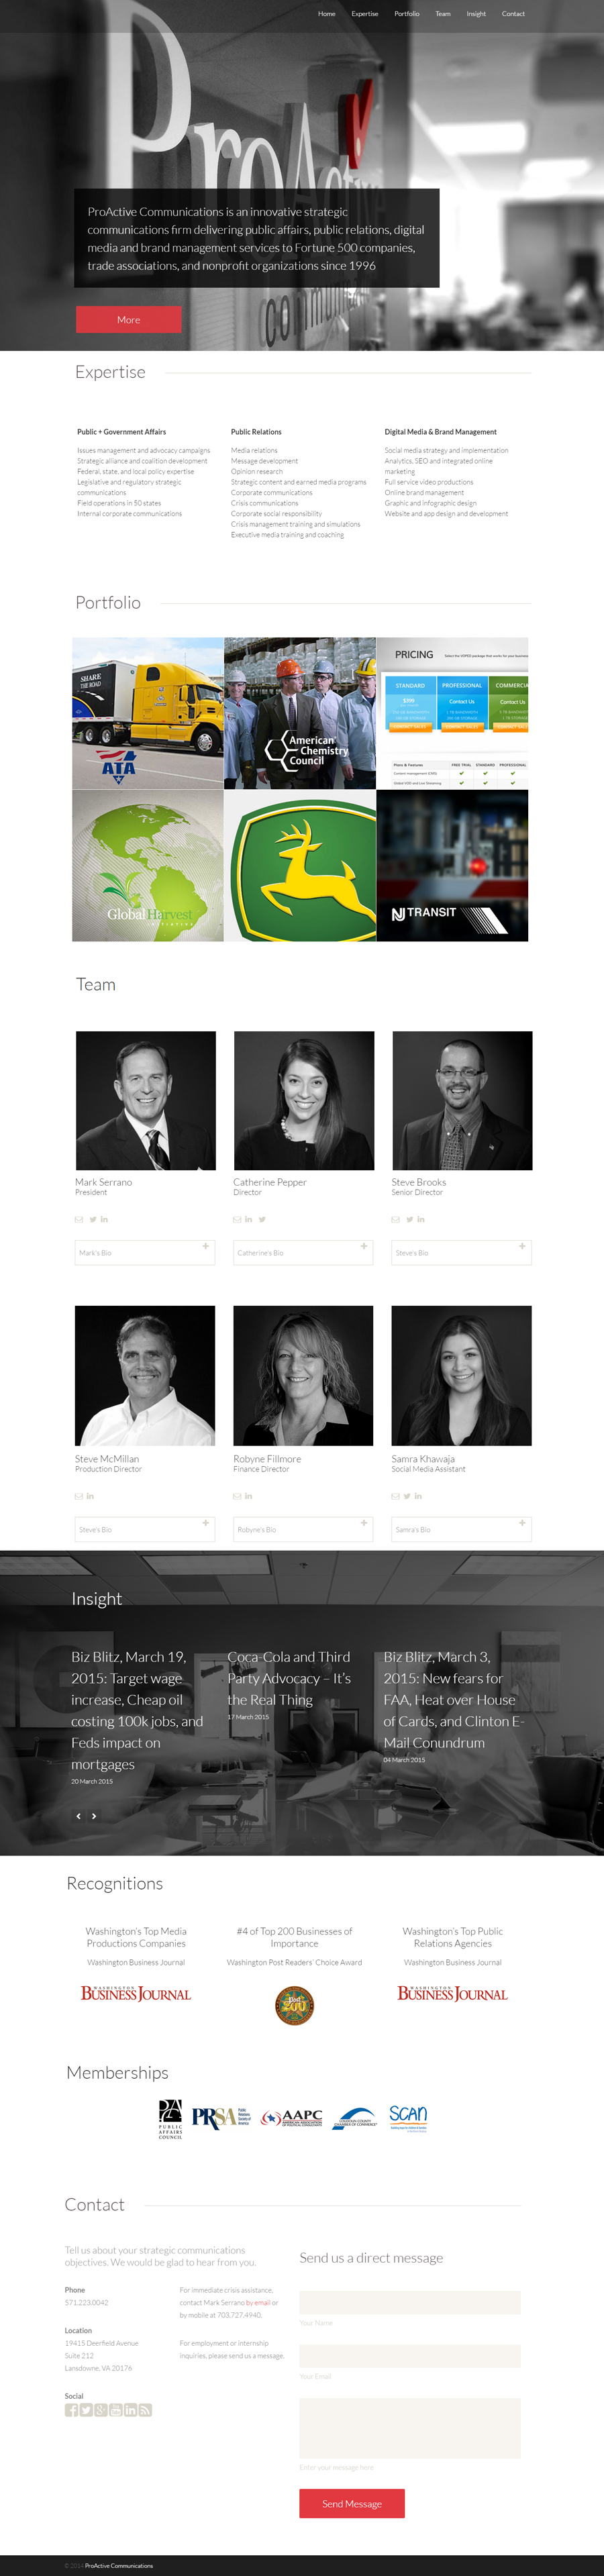 Parallax Website Redesign for Communications Firm